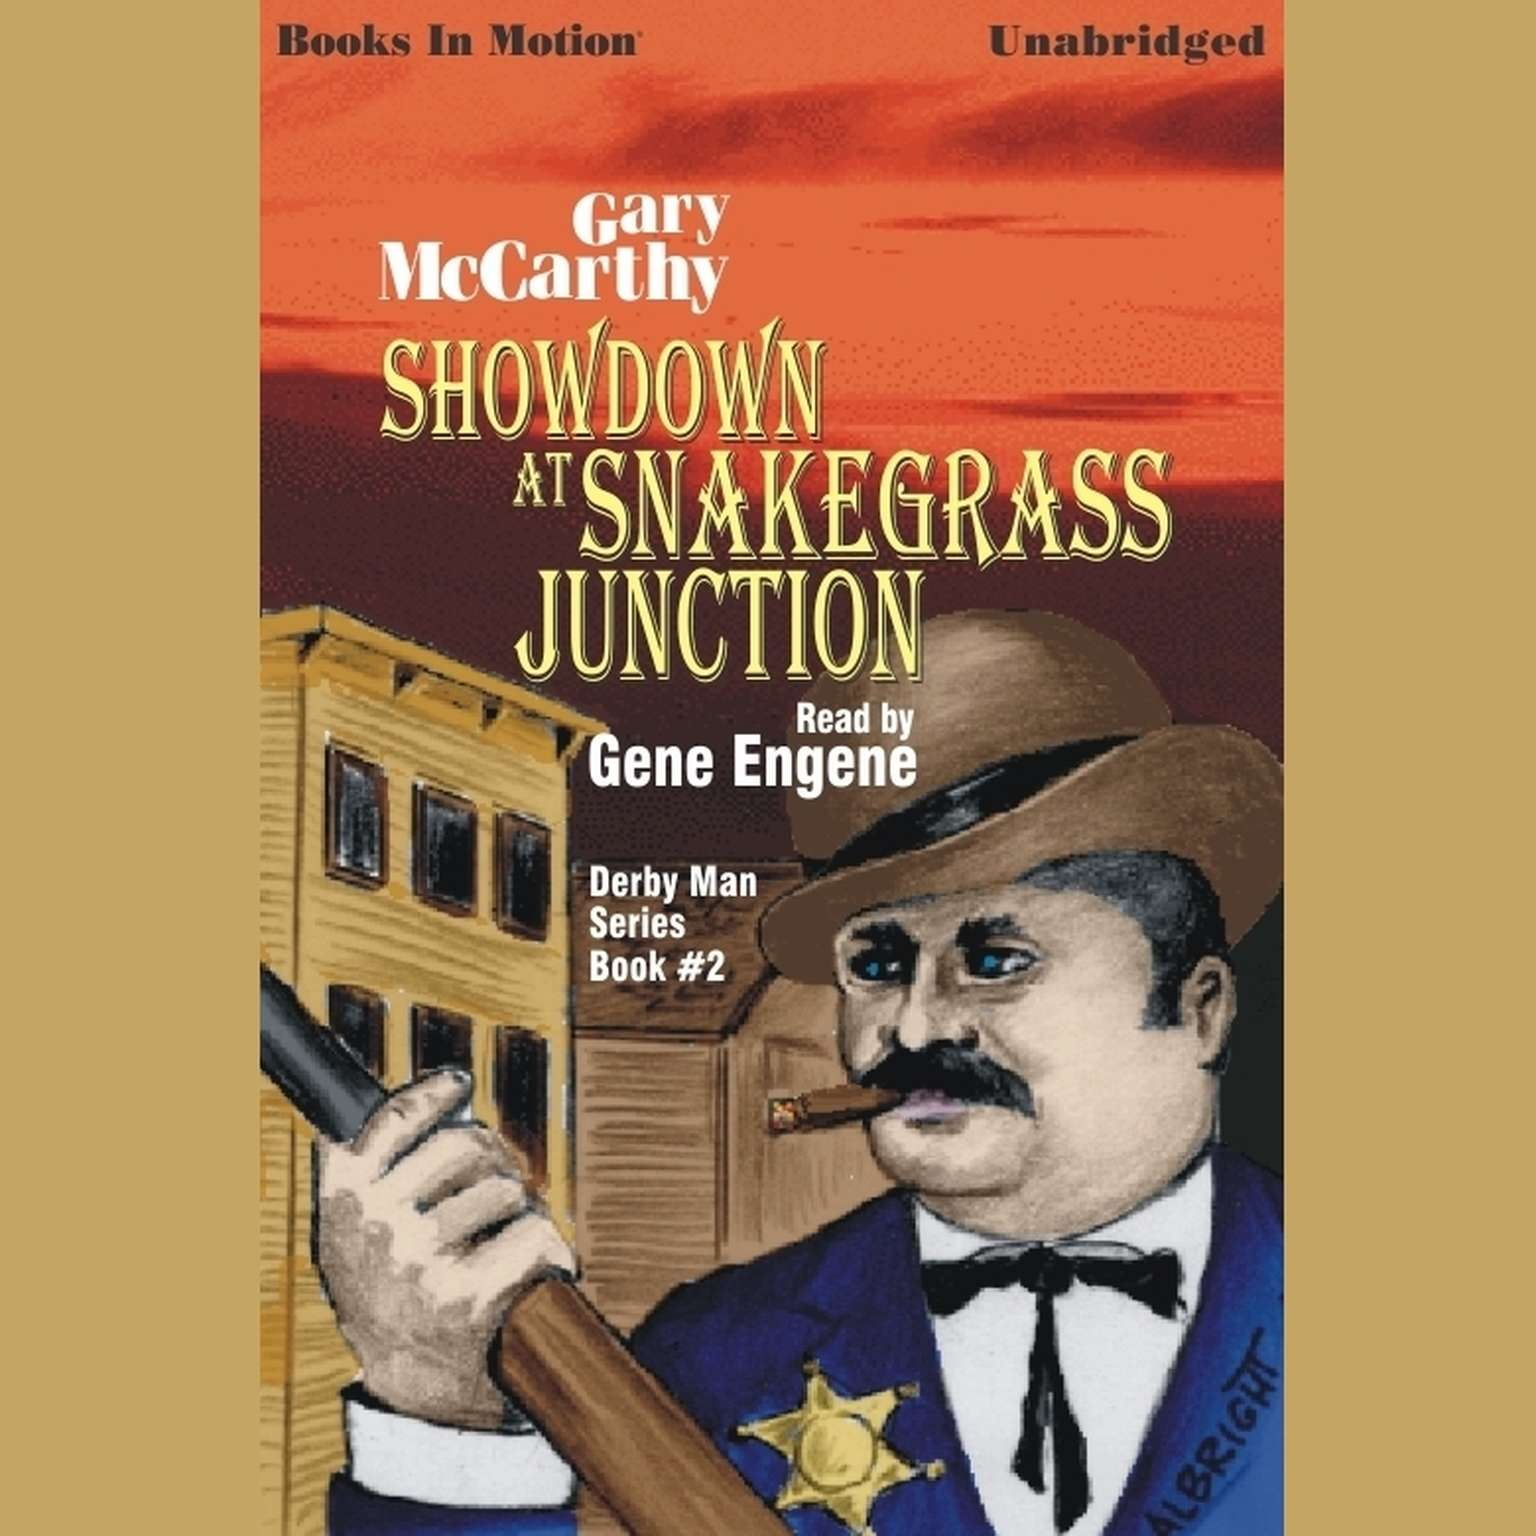 Showdown At Snakegrass Junction Audiobook, by Gary McCarthy